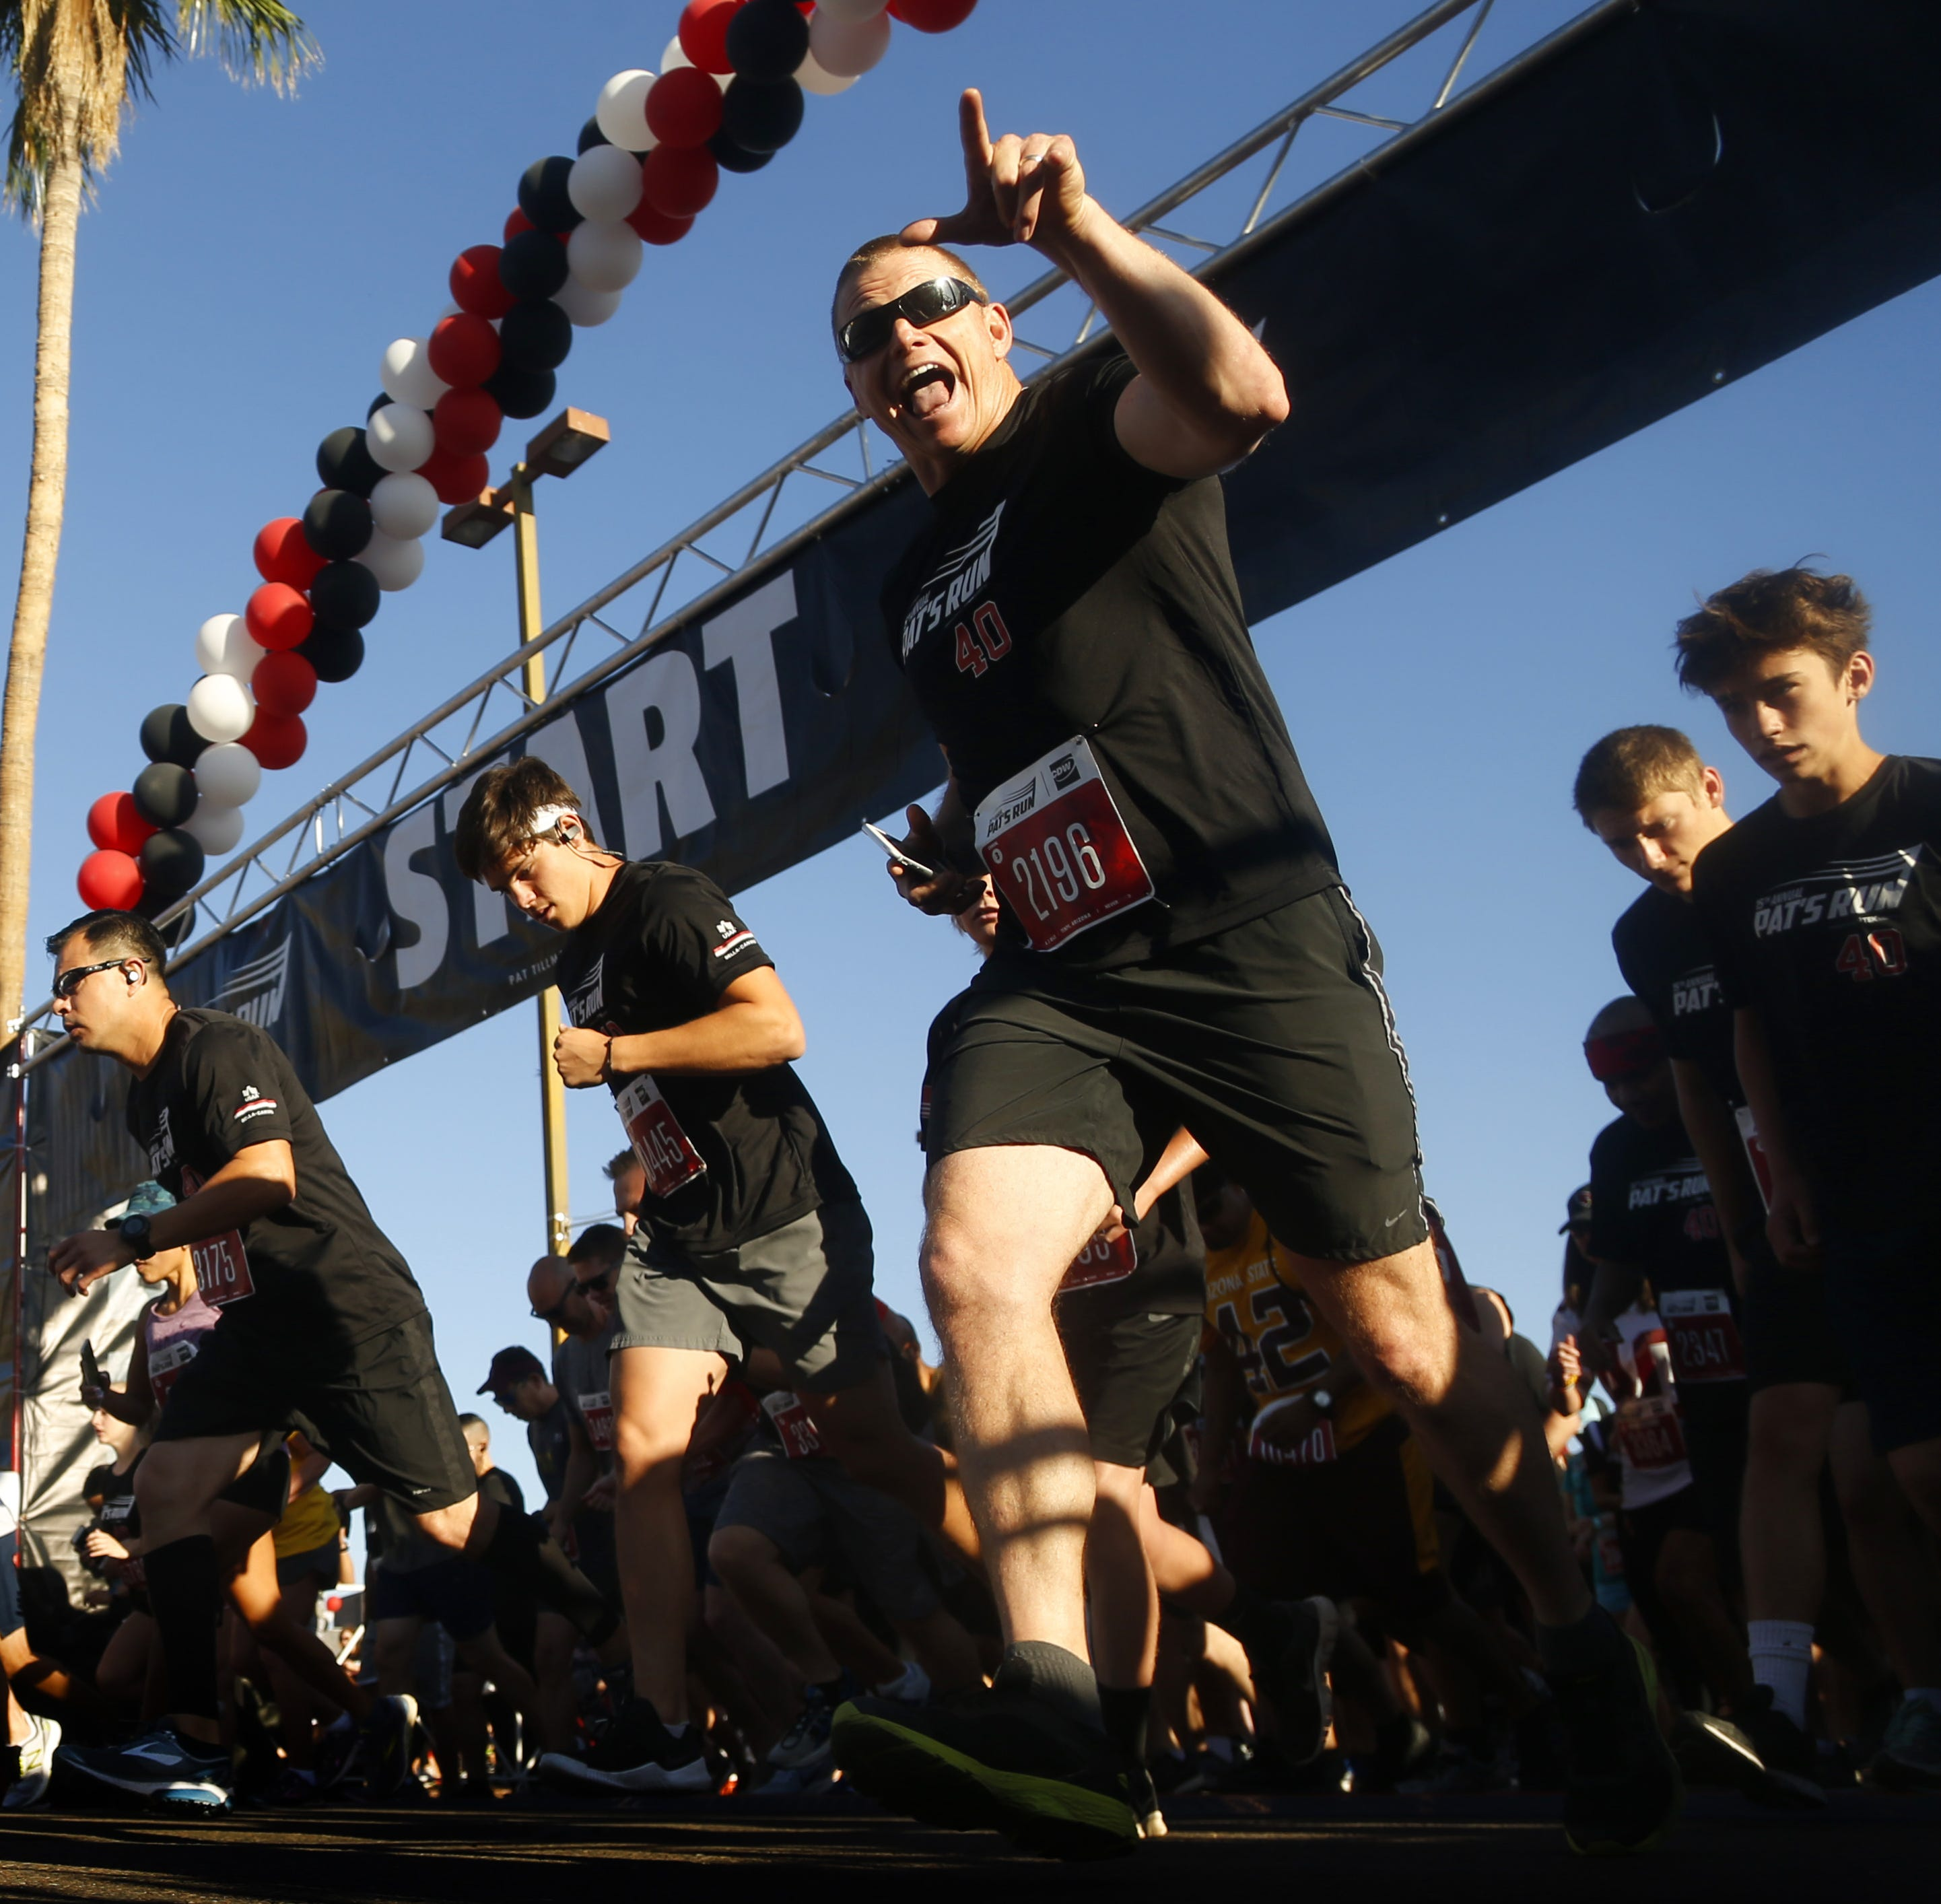 Thousands participate in 15th annual Pat's Run to honor Pat Tillman